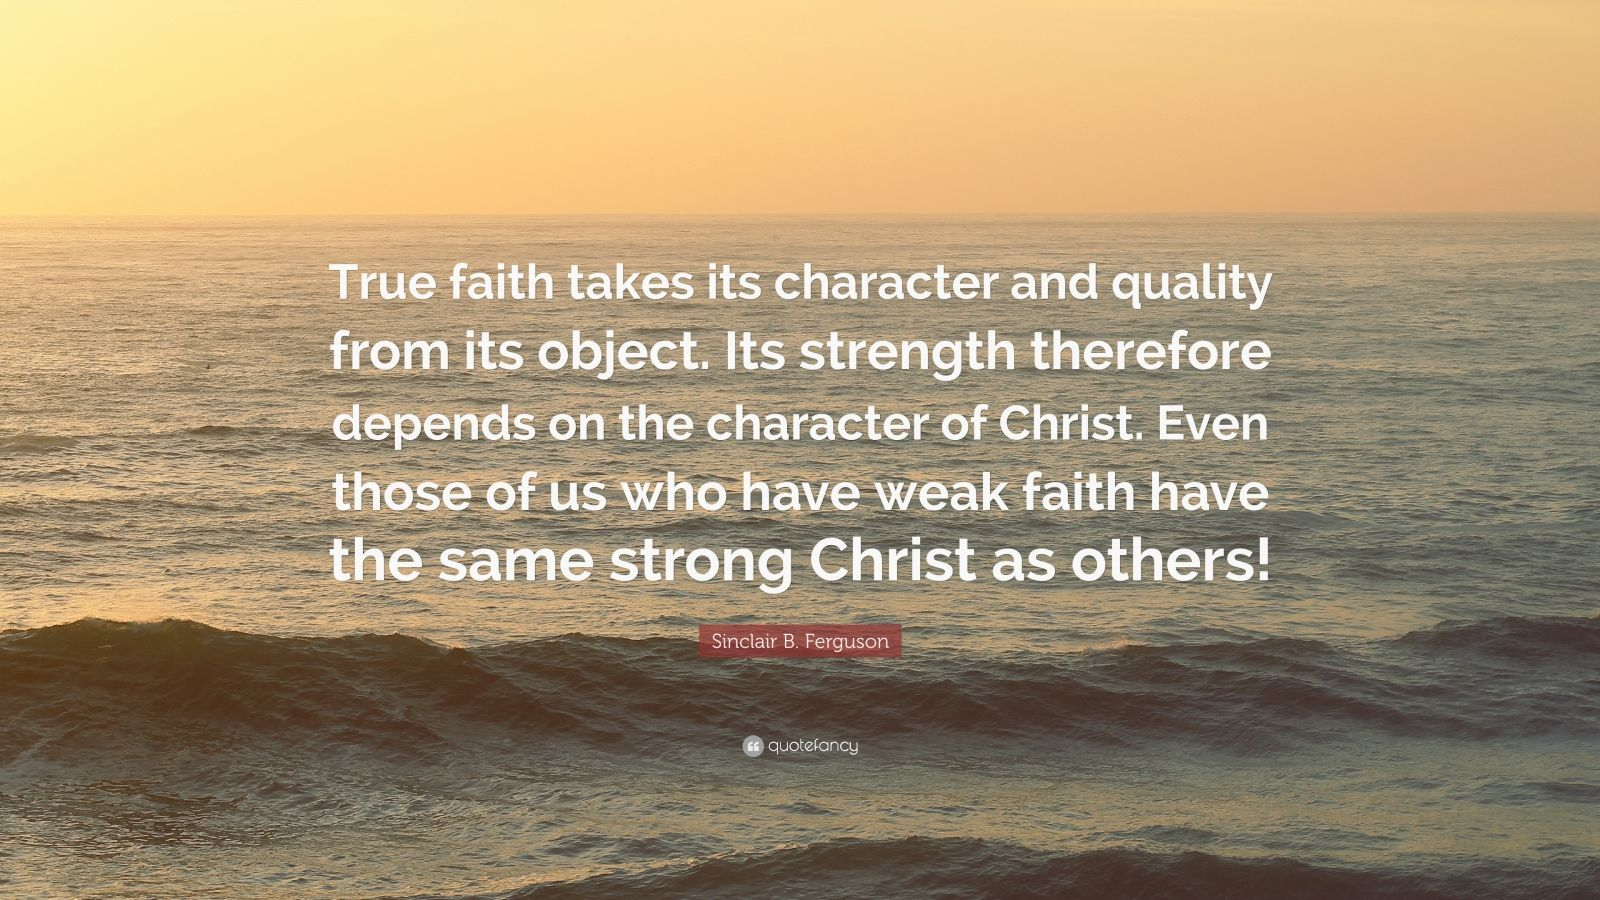 """Sinclair B. Ferguson Quote: """"True faith takes its character and quality from its object. Its strength therefore depends on the character of Christ. Even those of us who have weak faith have the same strong Christ as others!"""""""